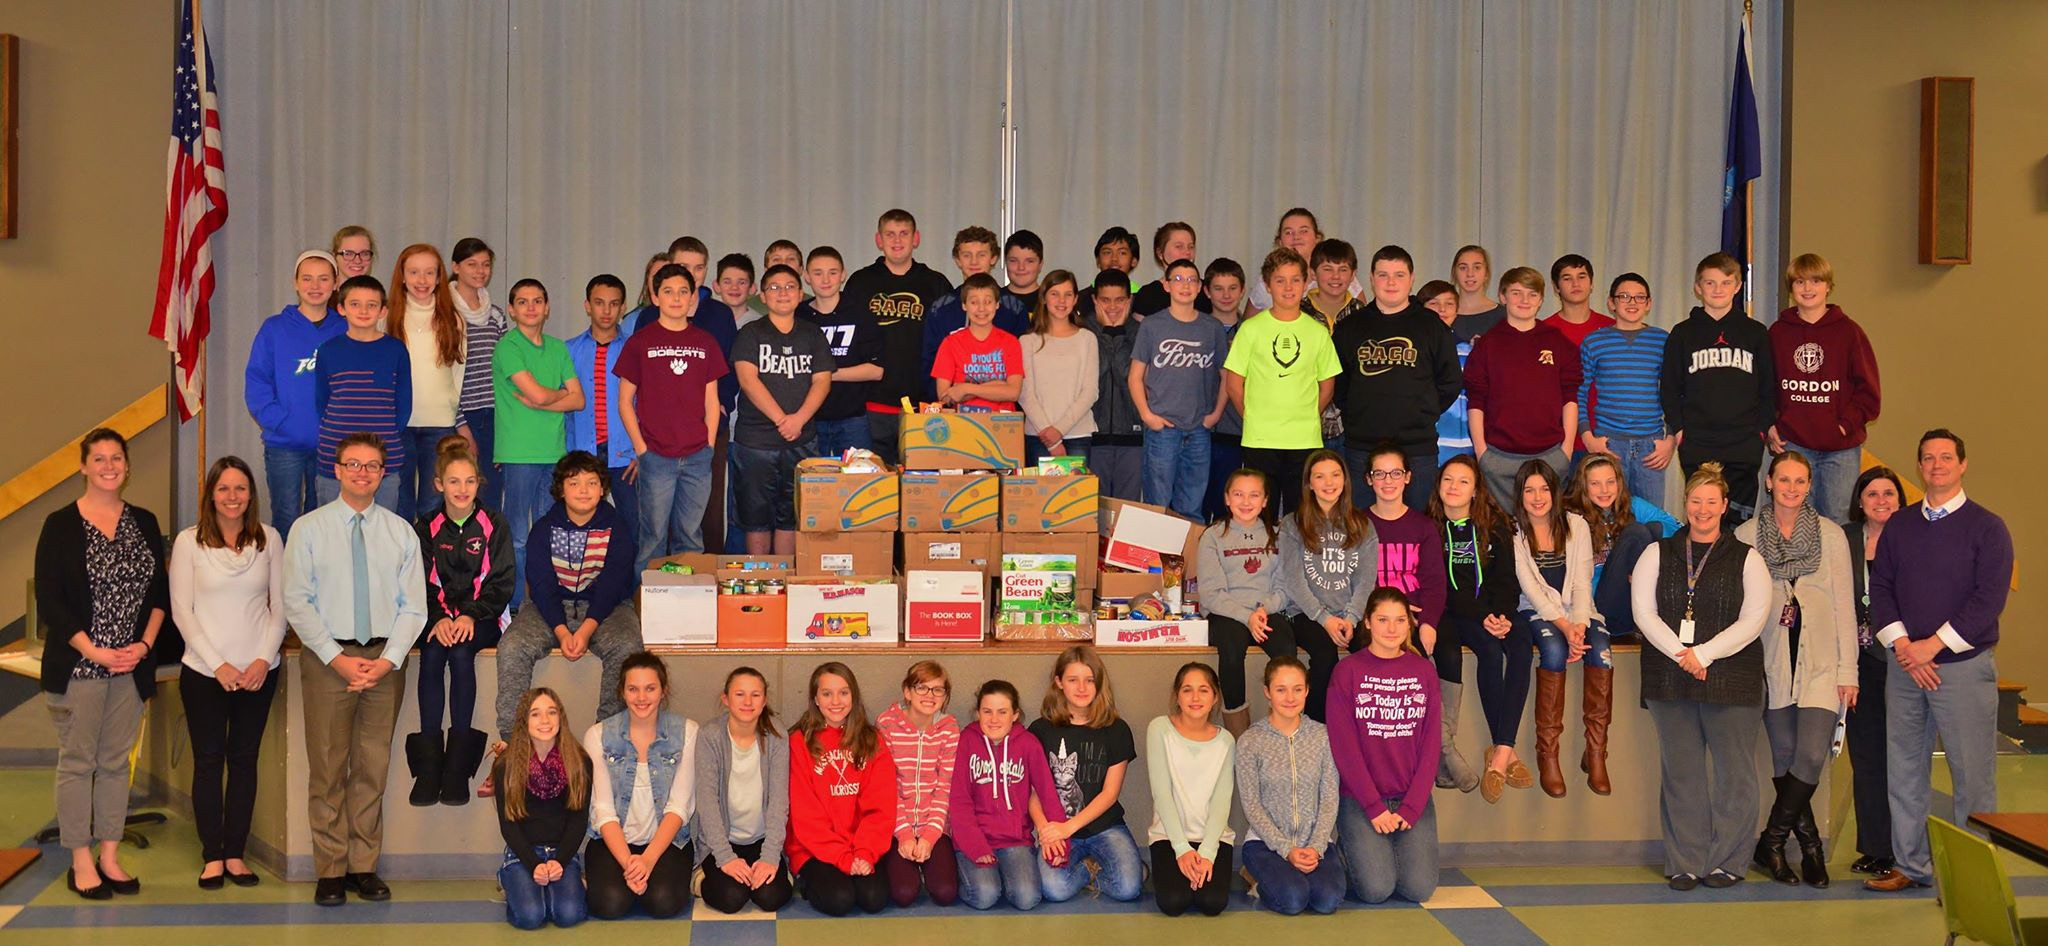 This fall, Saco Middle School collected over 700 donations for the Saco Food Pantry. State Rep. Justin Chenette of Saco, who works for the Journal Tribune as a digital advertising executive, visited the school to congratulate the seventh-grade Ravens team, which brought in the most food items.